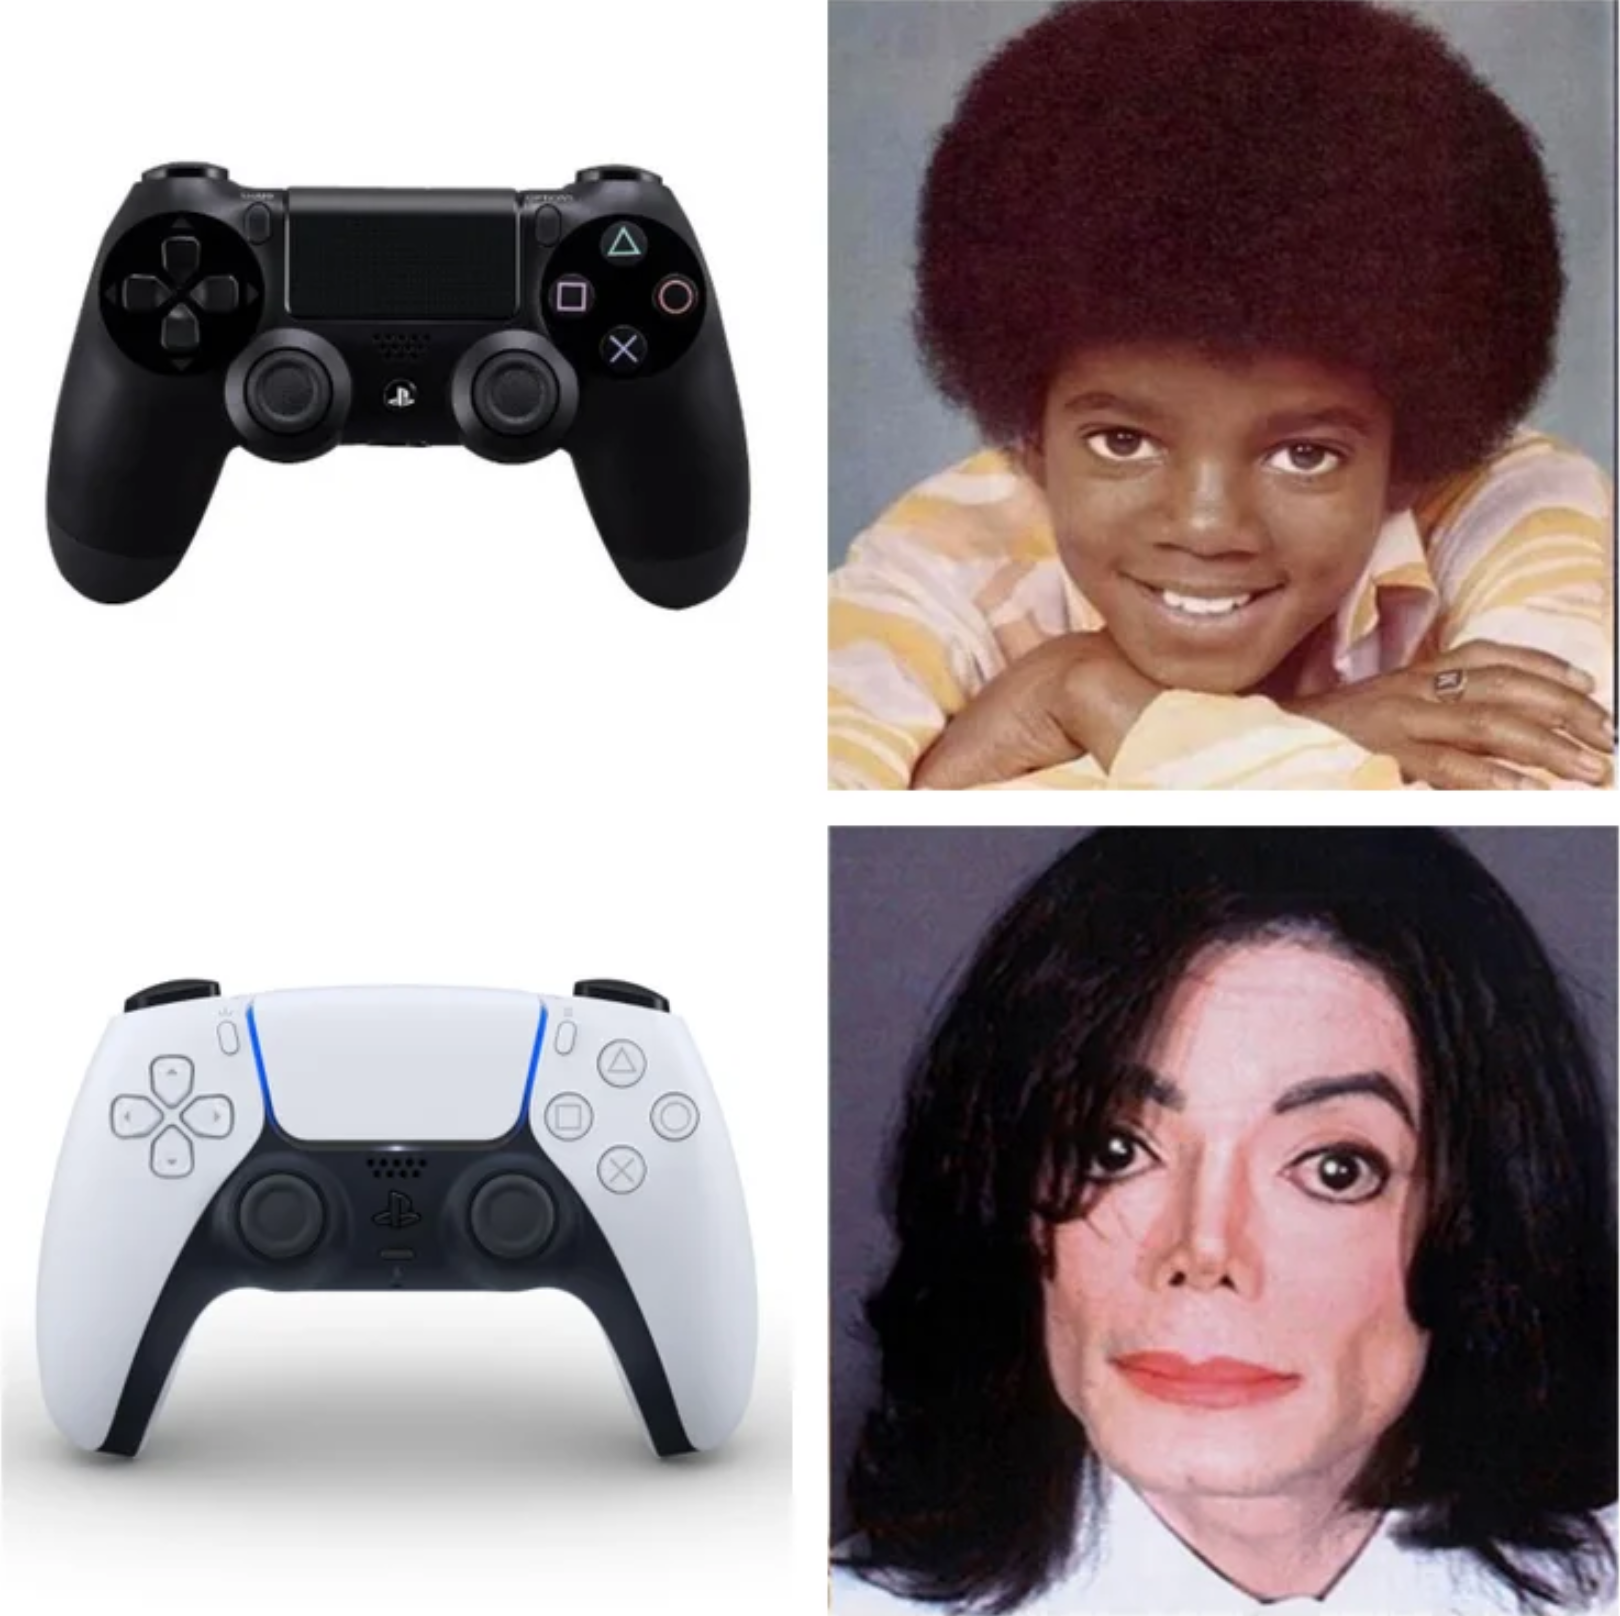 Best Playstation 5 Controller Memes From Around The Web In 2020 Playstation 5 Playstation Memes